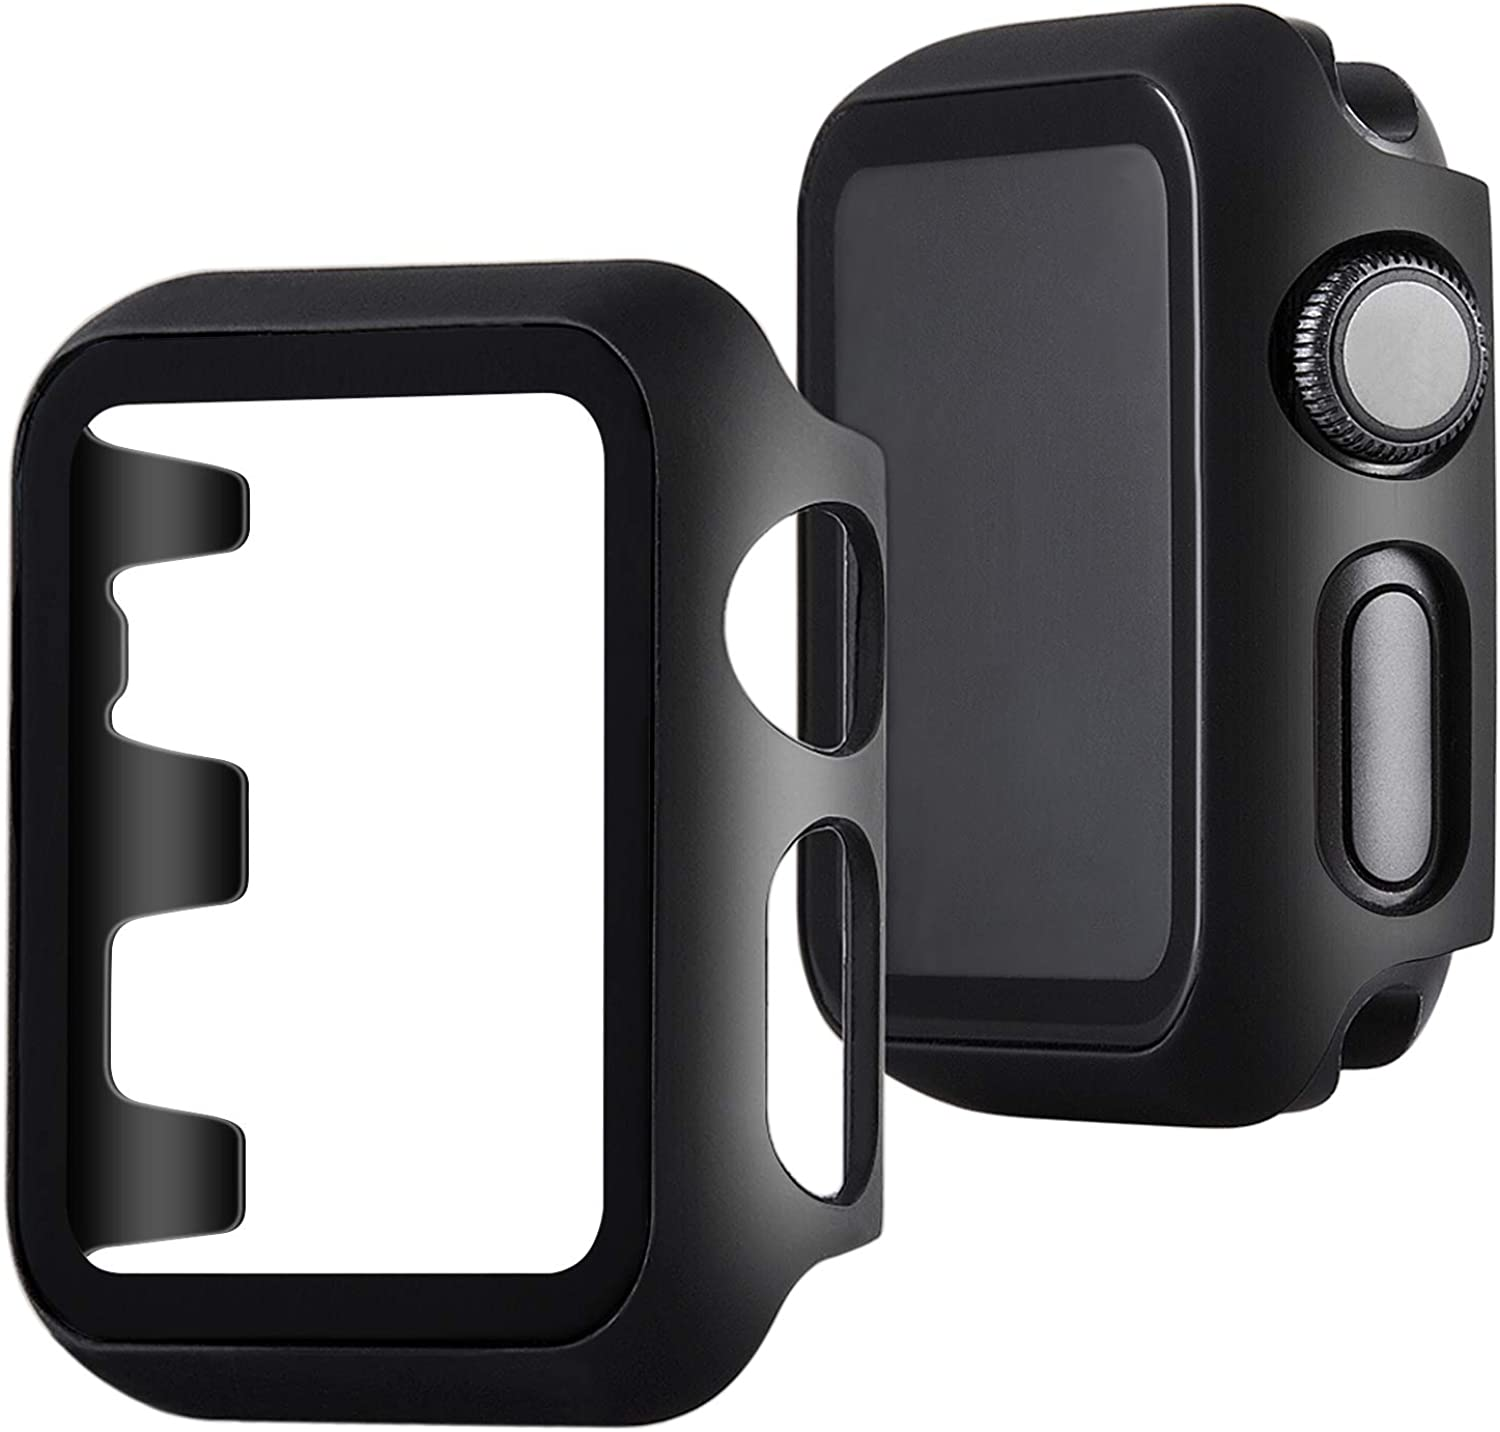 VIQIV Screen Protective Face Bumper Case Cover for Compatible with Apple Watch Band 38mm 42mm 40mm 44mm, Ultra-Slim Lightweight Frame Compatible with iWatch Series 5 4 3 2 1